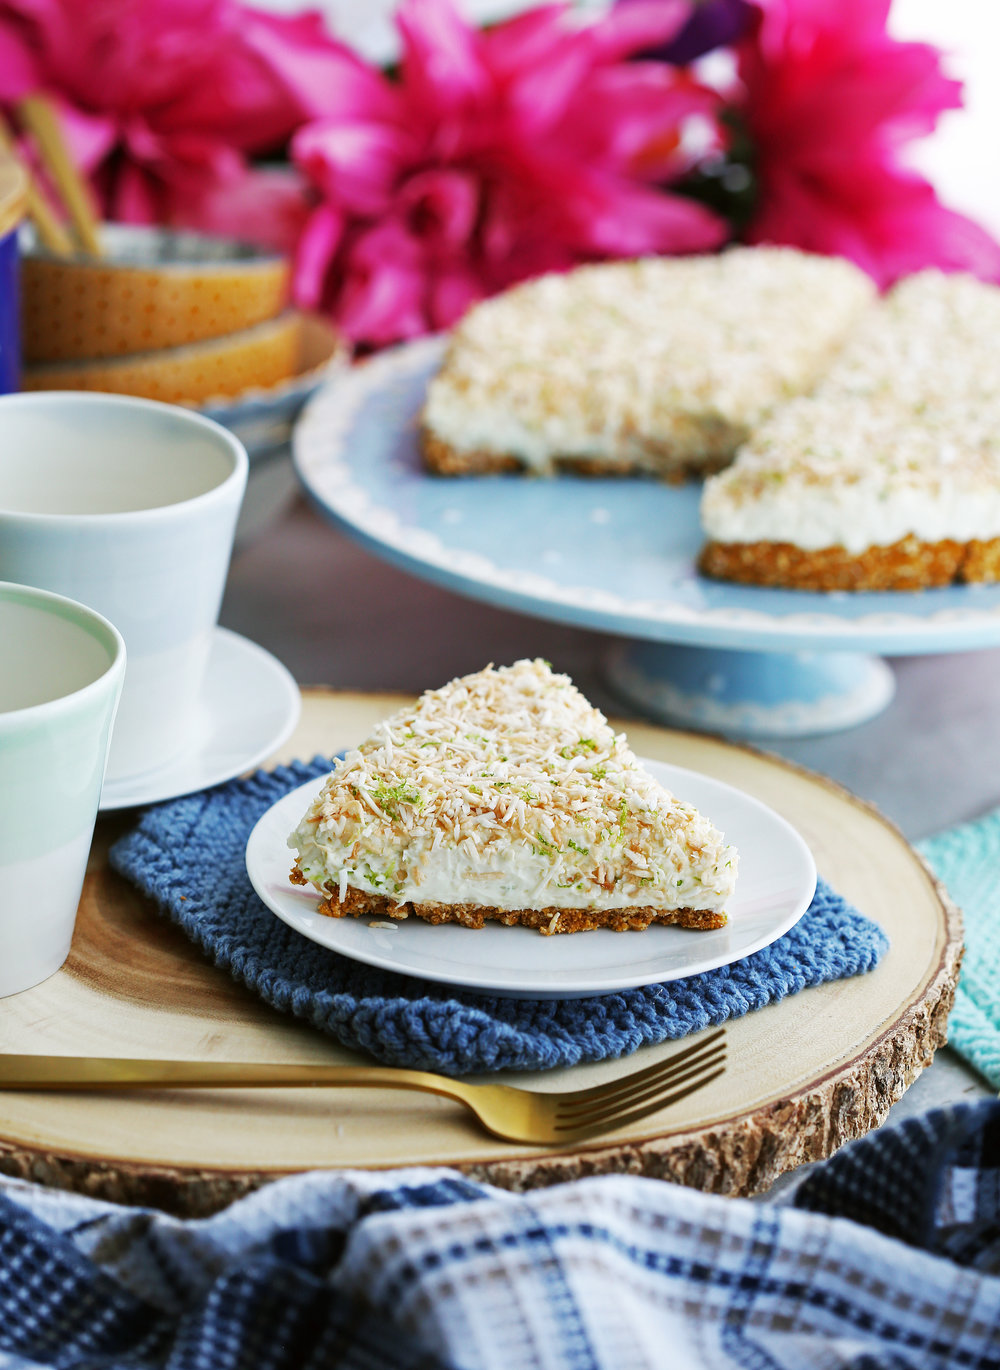 A slice of no-bake coconut lime mascarpone cheesecake on a white plate with more cheesecake on a cake platter behind it.